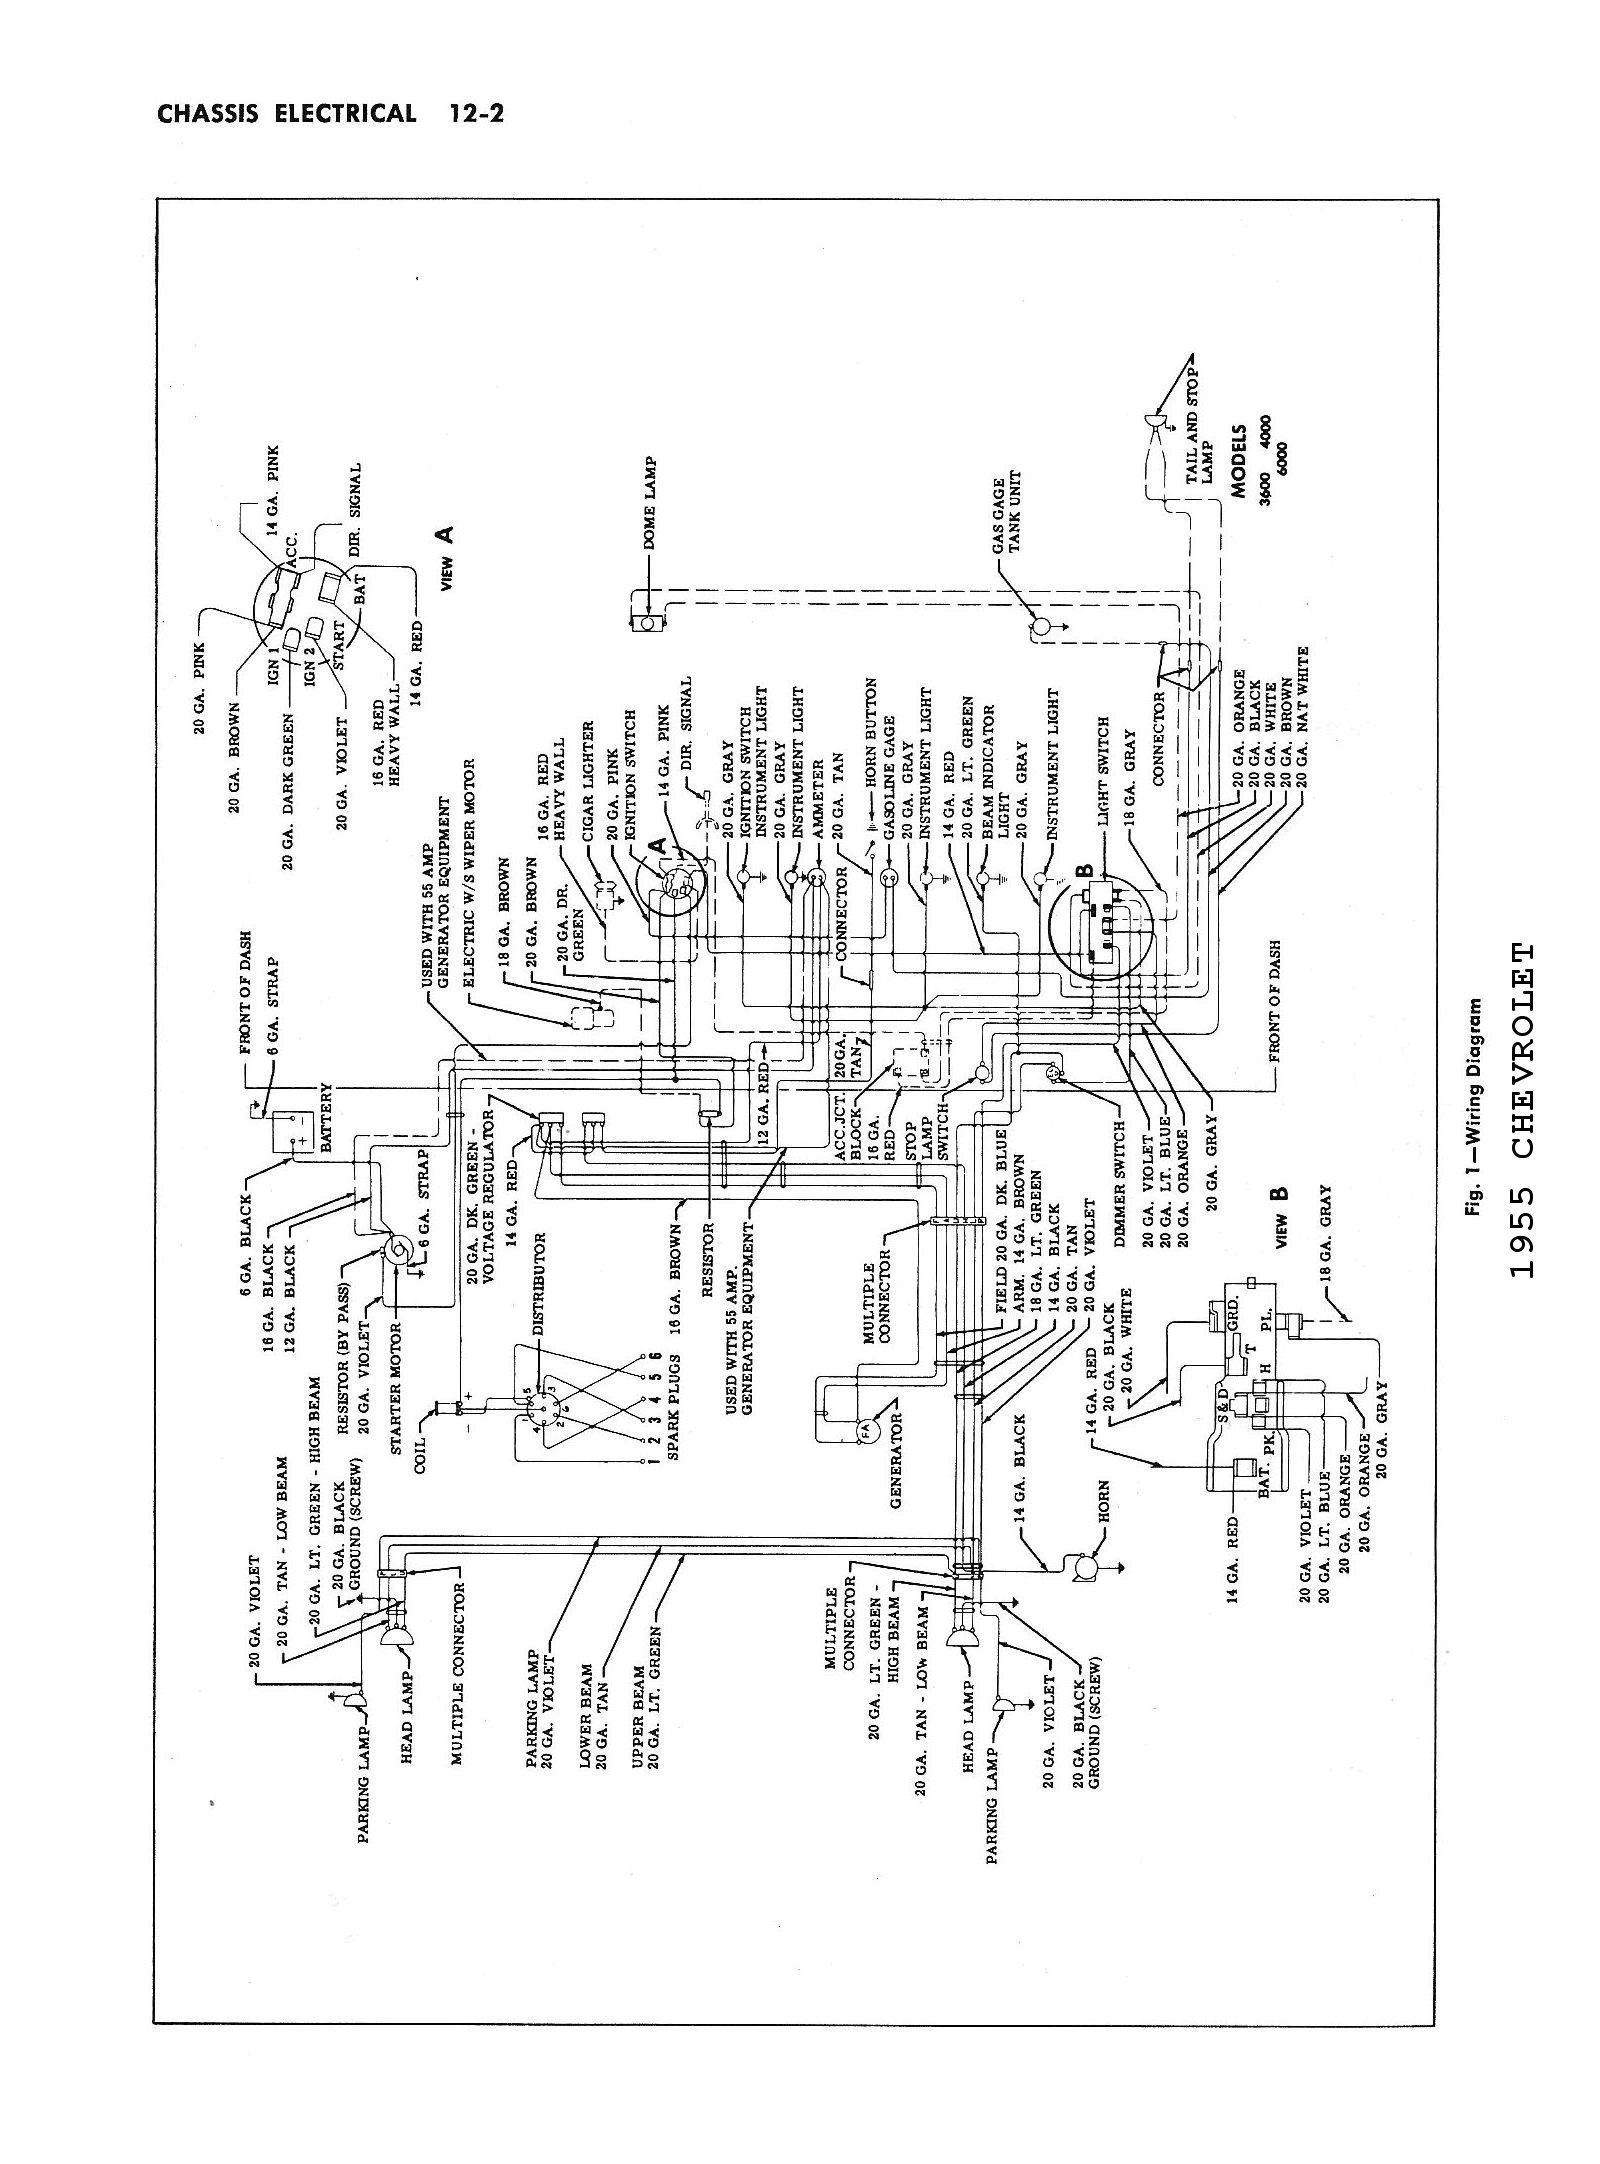 hight resolution of 1957 chevy wagon wiring harness wiring diagram 1957 chevy wagon wiring harness